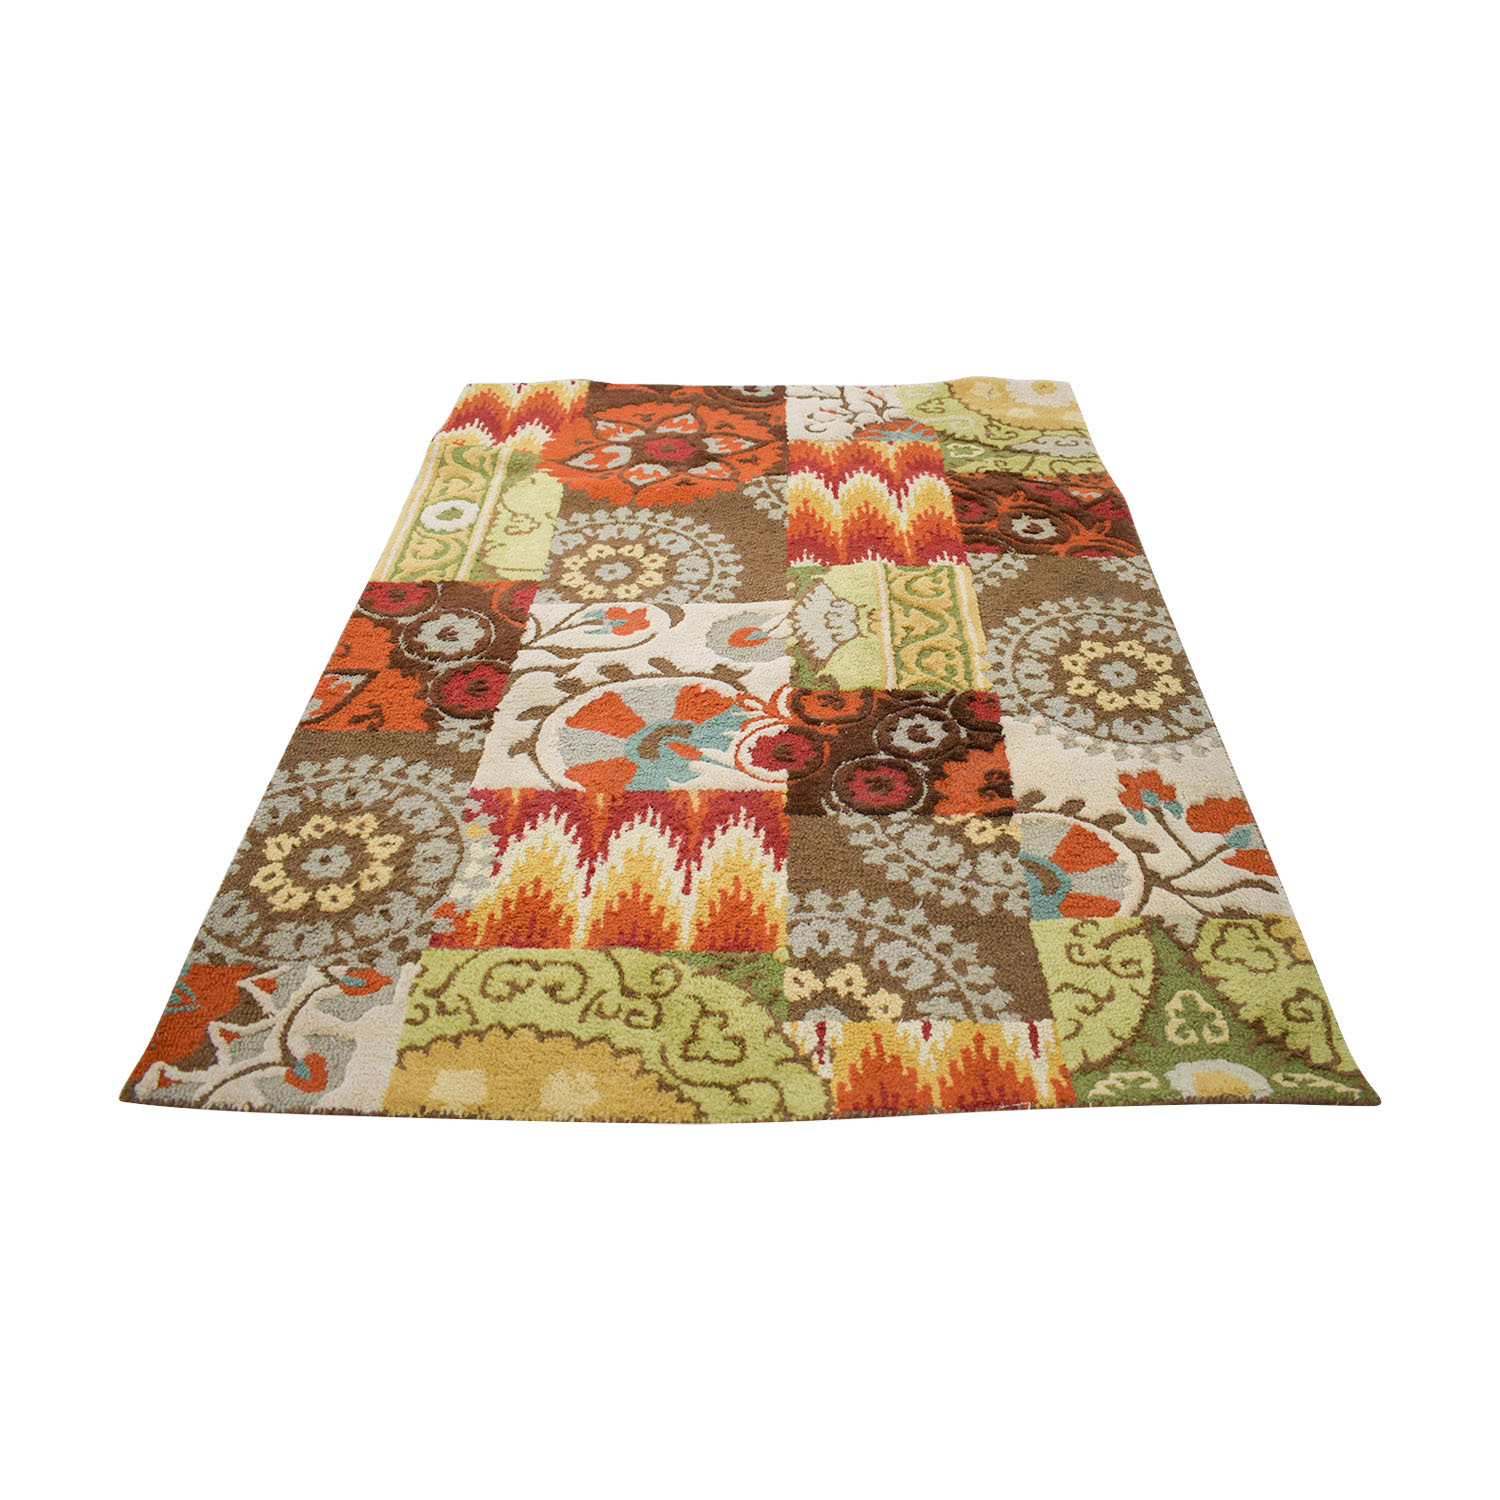 shop Threshold Threshold Patchwork Multi-Colored Rug online